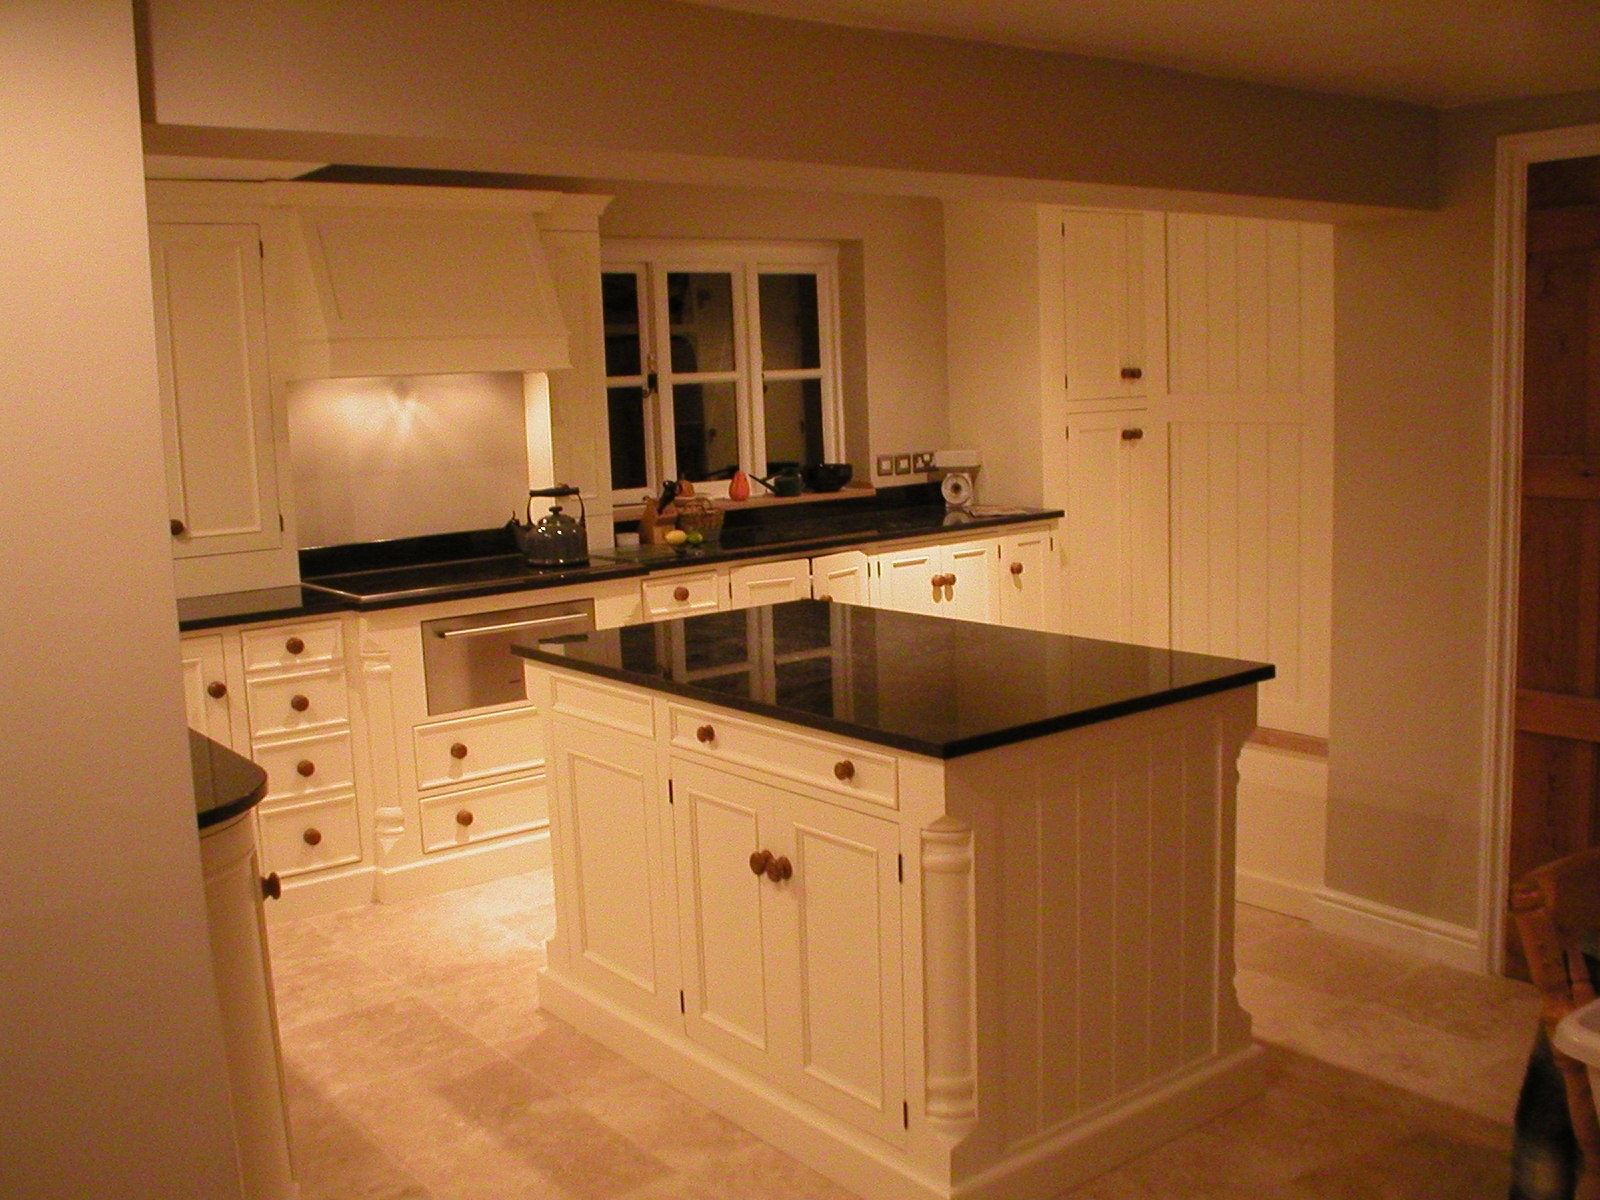 Bespoke kitchen aga handmade wooden design ideas photo for Kitchen unit design